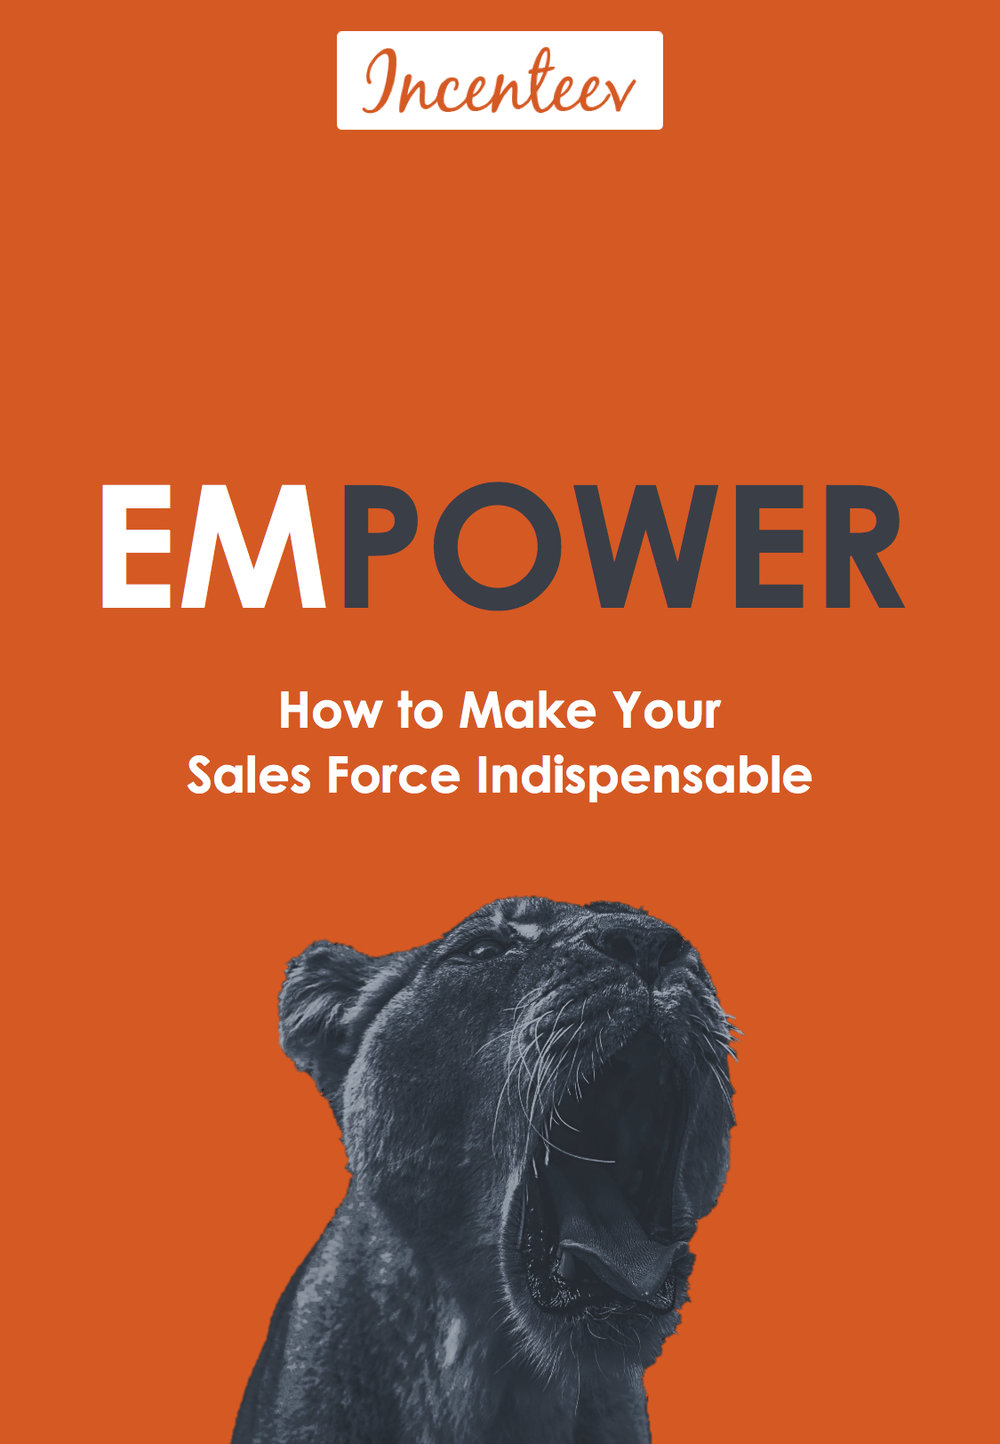 télécharger livre blanc empower: how to make your sales force indispensable